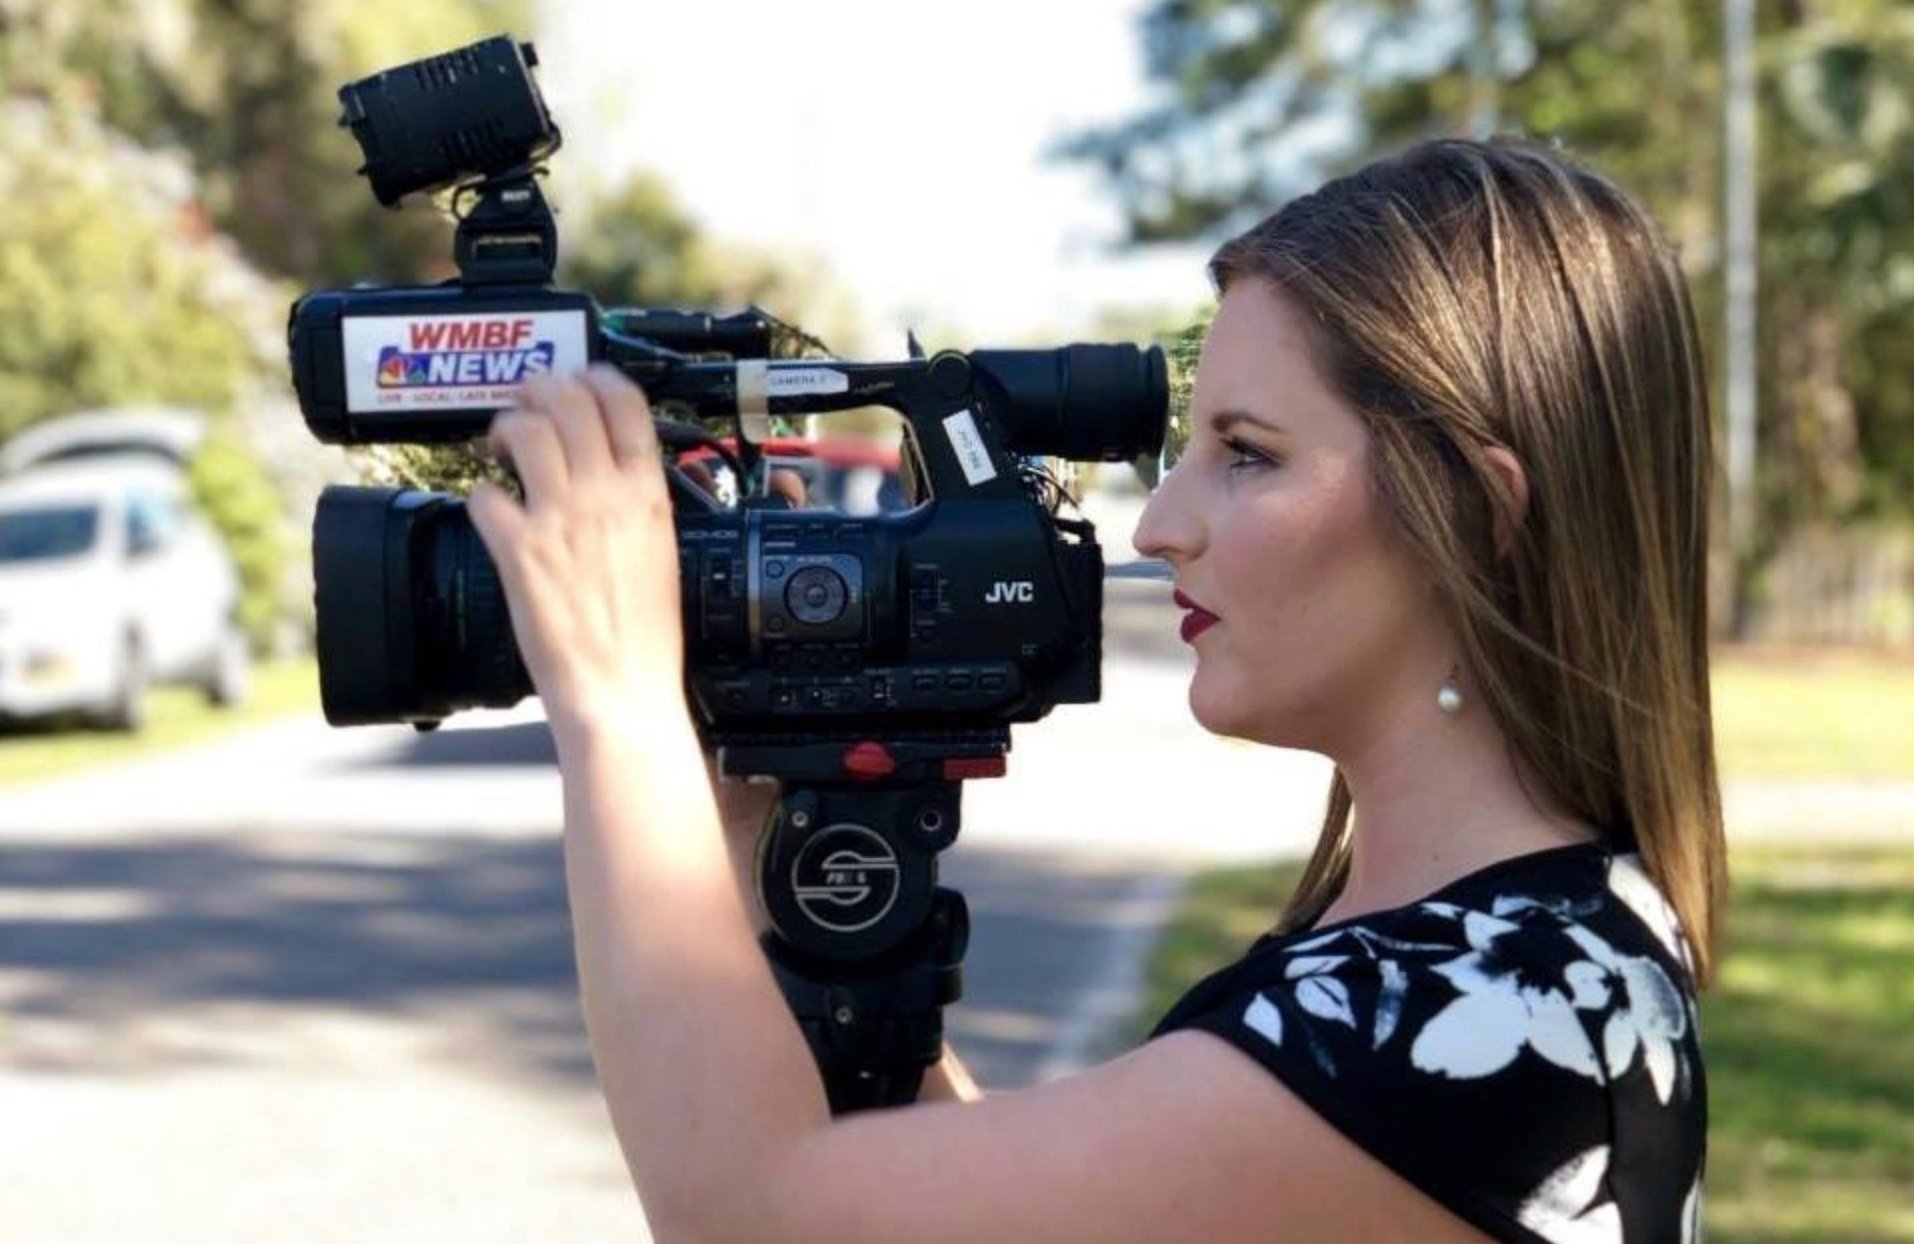 FITSNews – Dirty Myrtle: TV Reporter Groped, Accosted On Camera